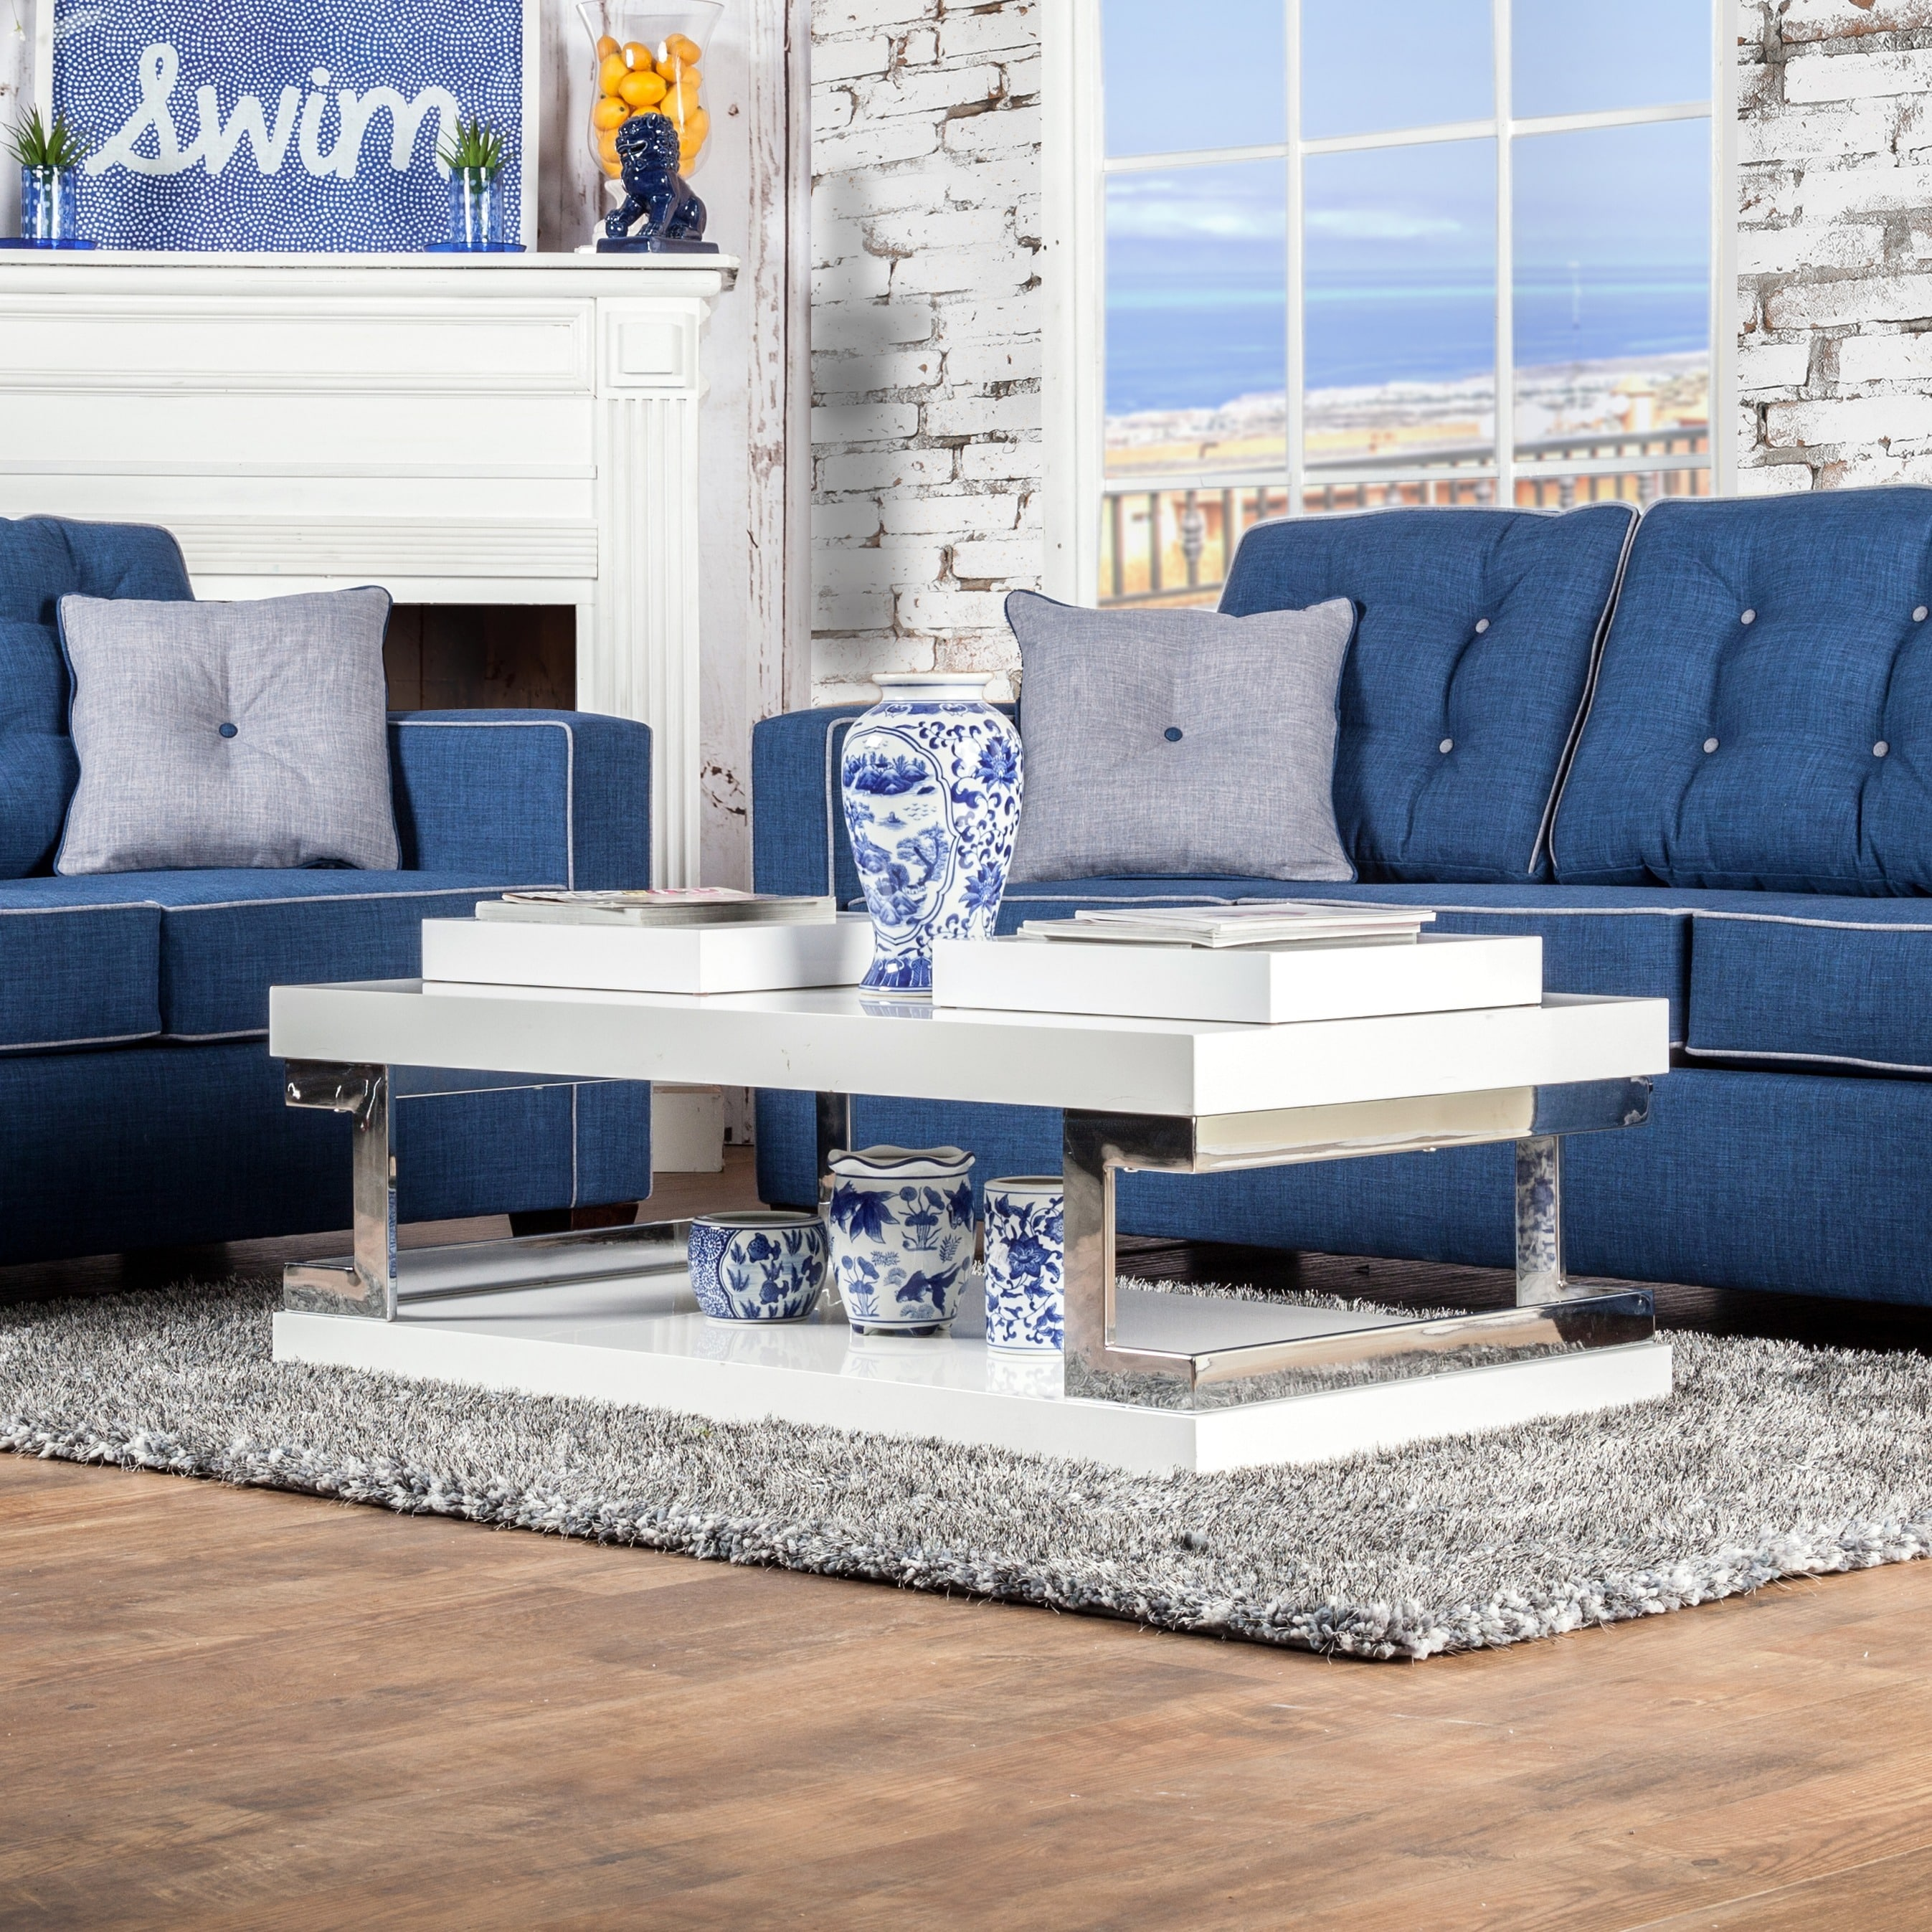 Furniture of America Lolie White Gloss Coffee Table (White)